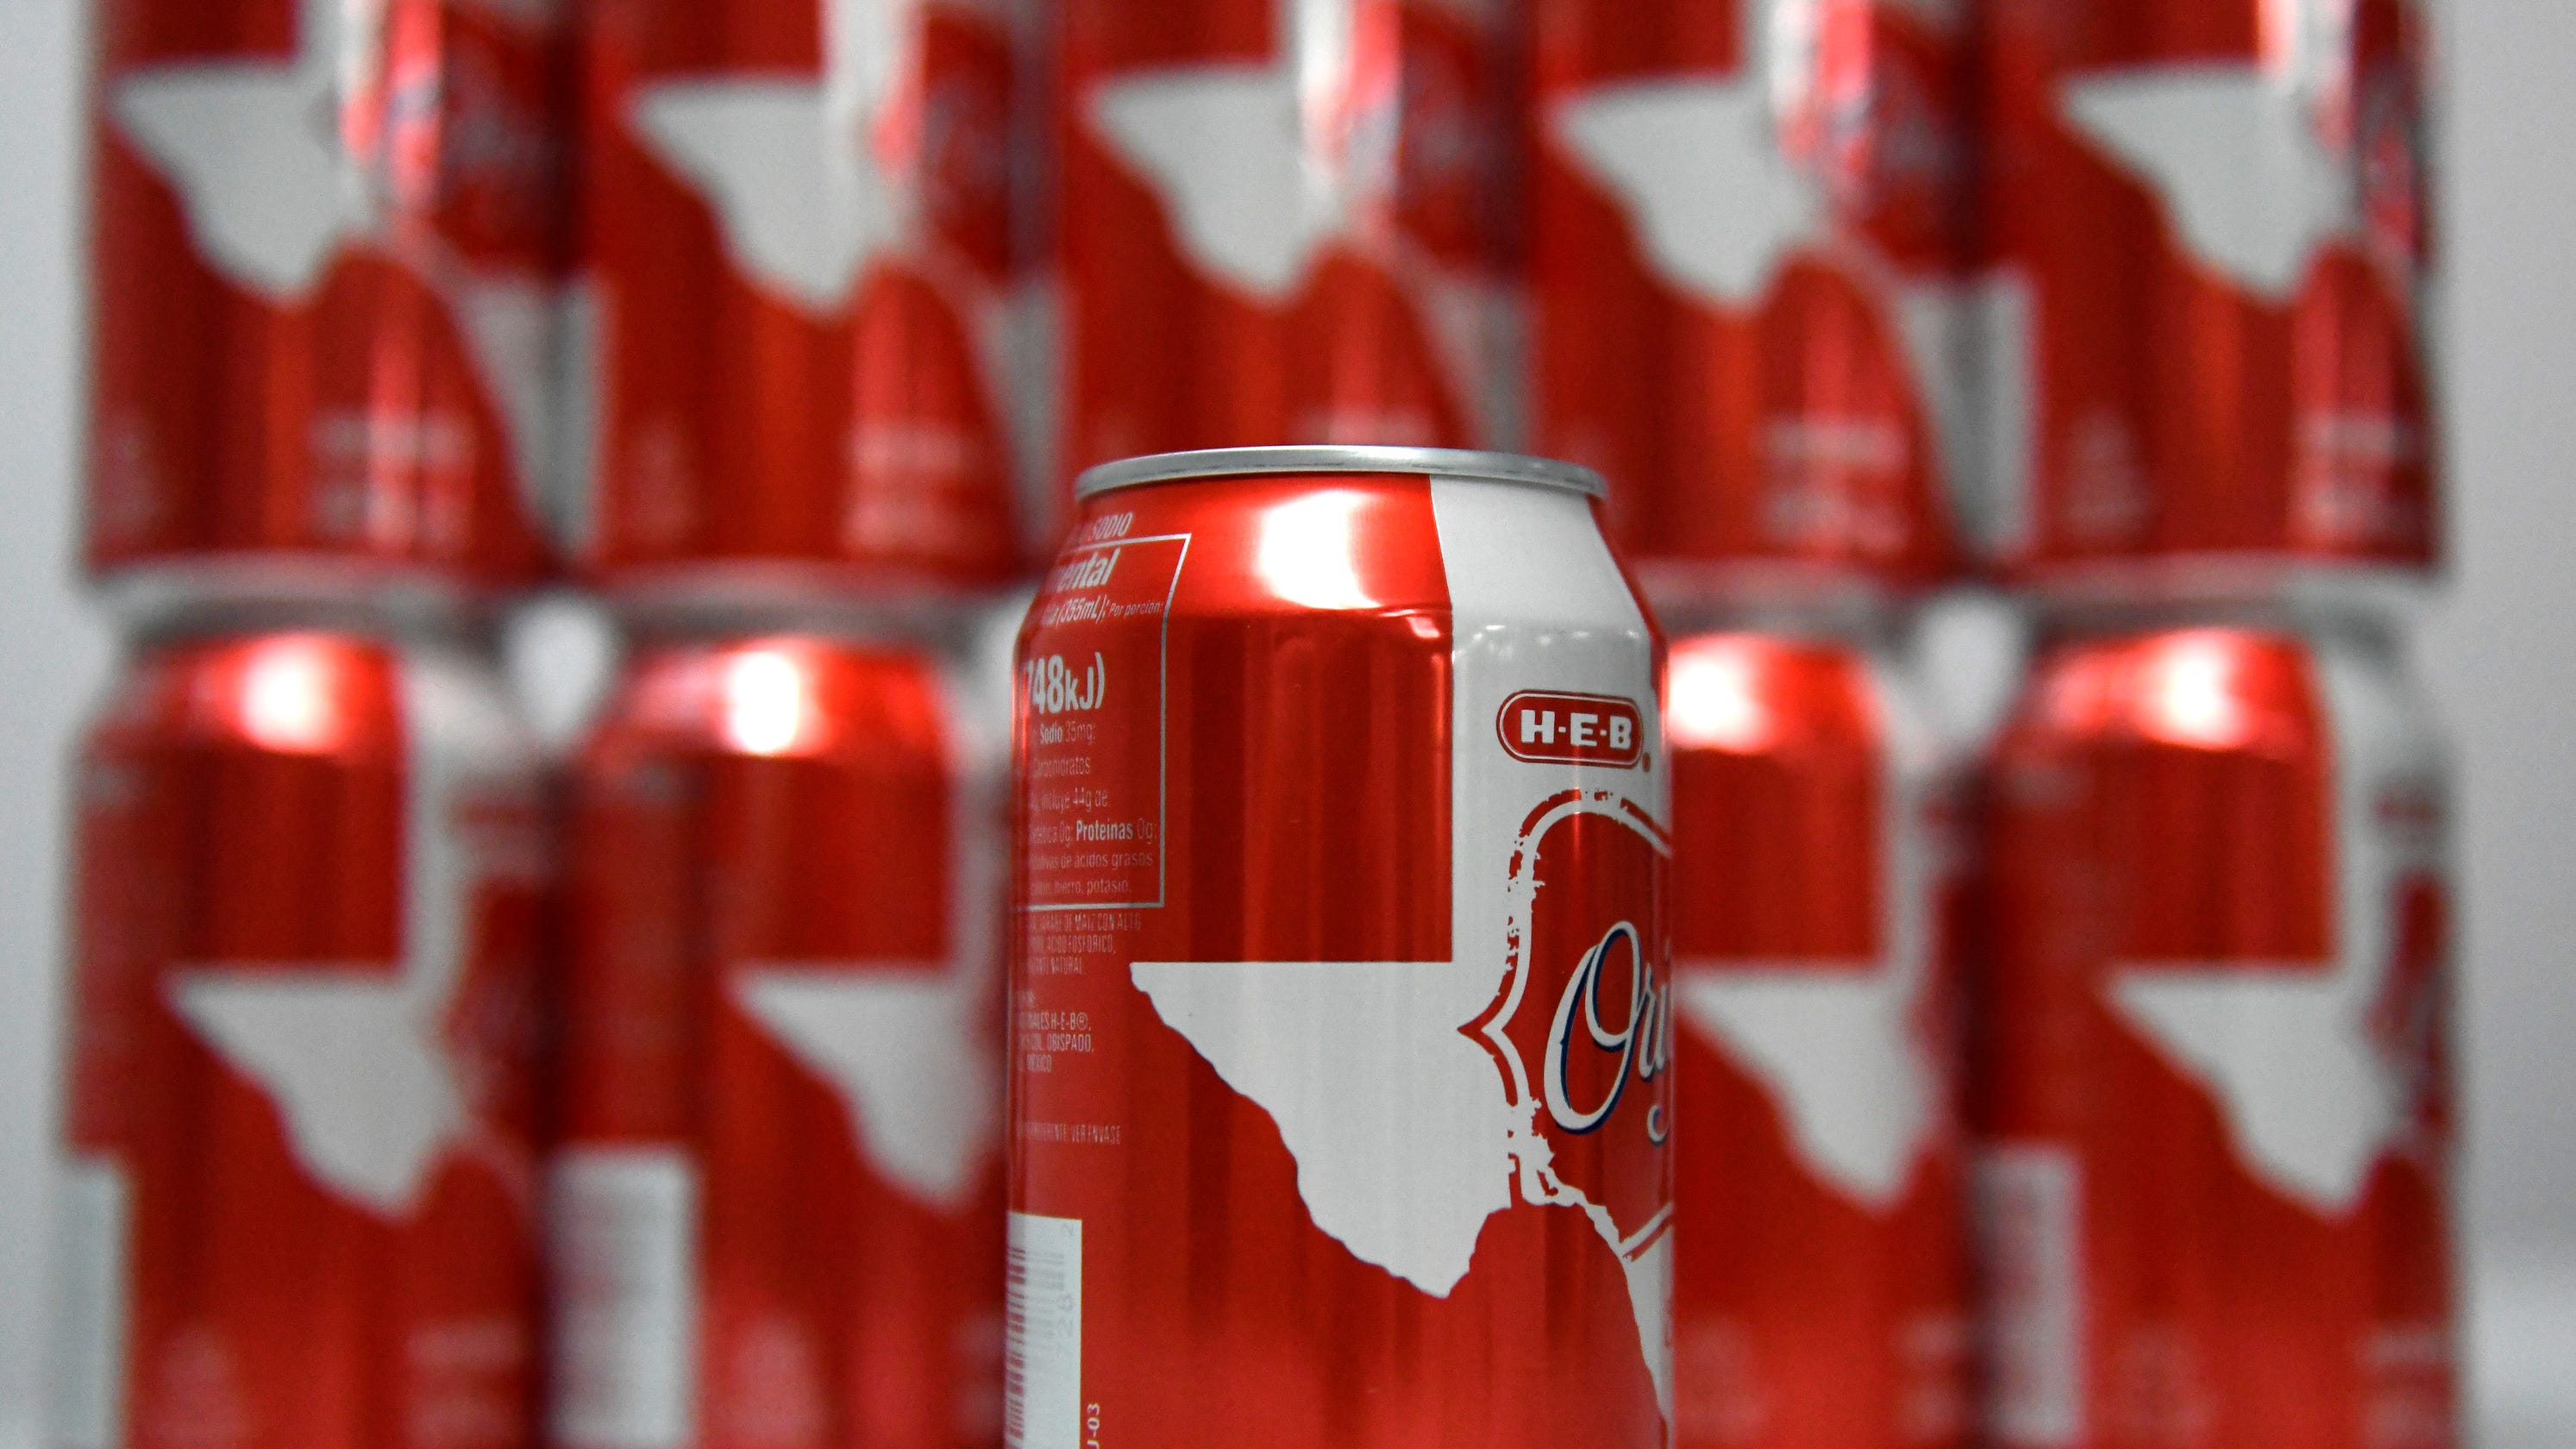 Throwing shade on the Sun City? Some H-E-B cola can wraps cut off El Paso in Texas logo